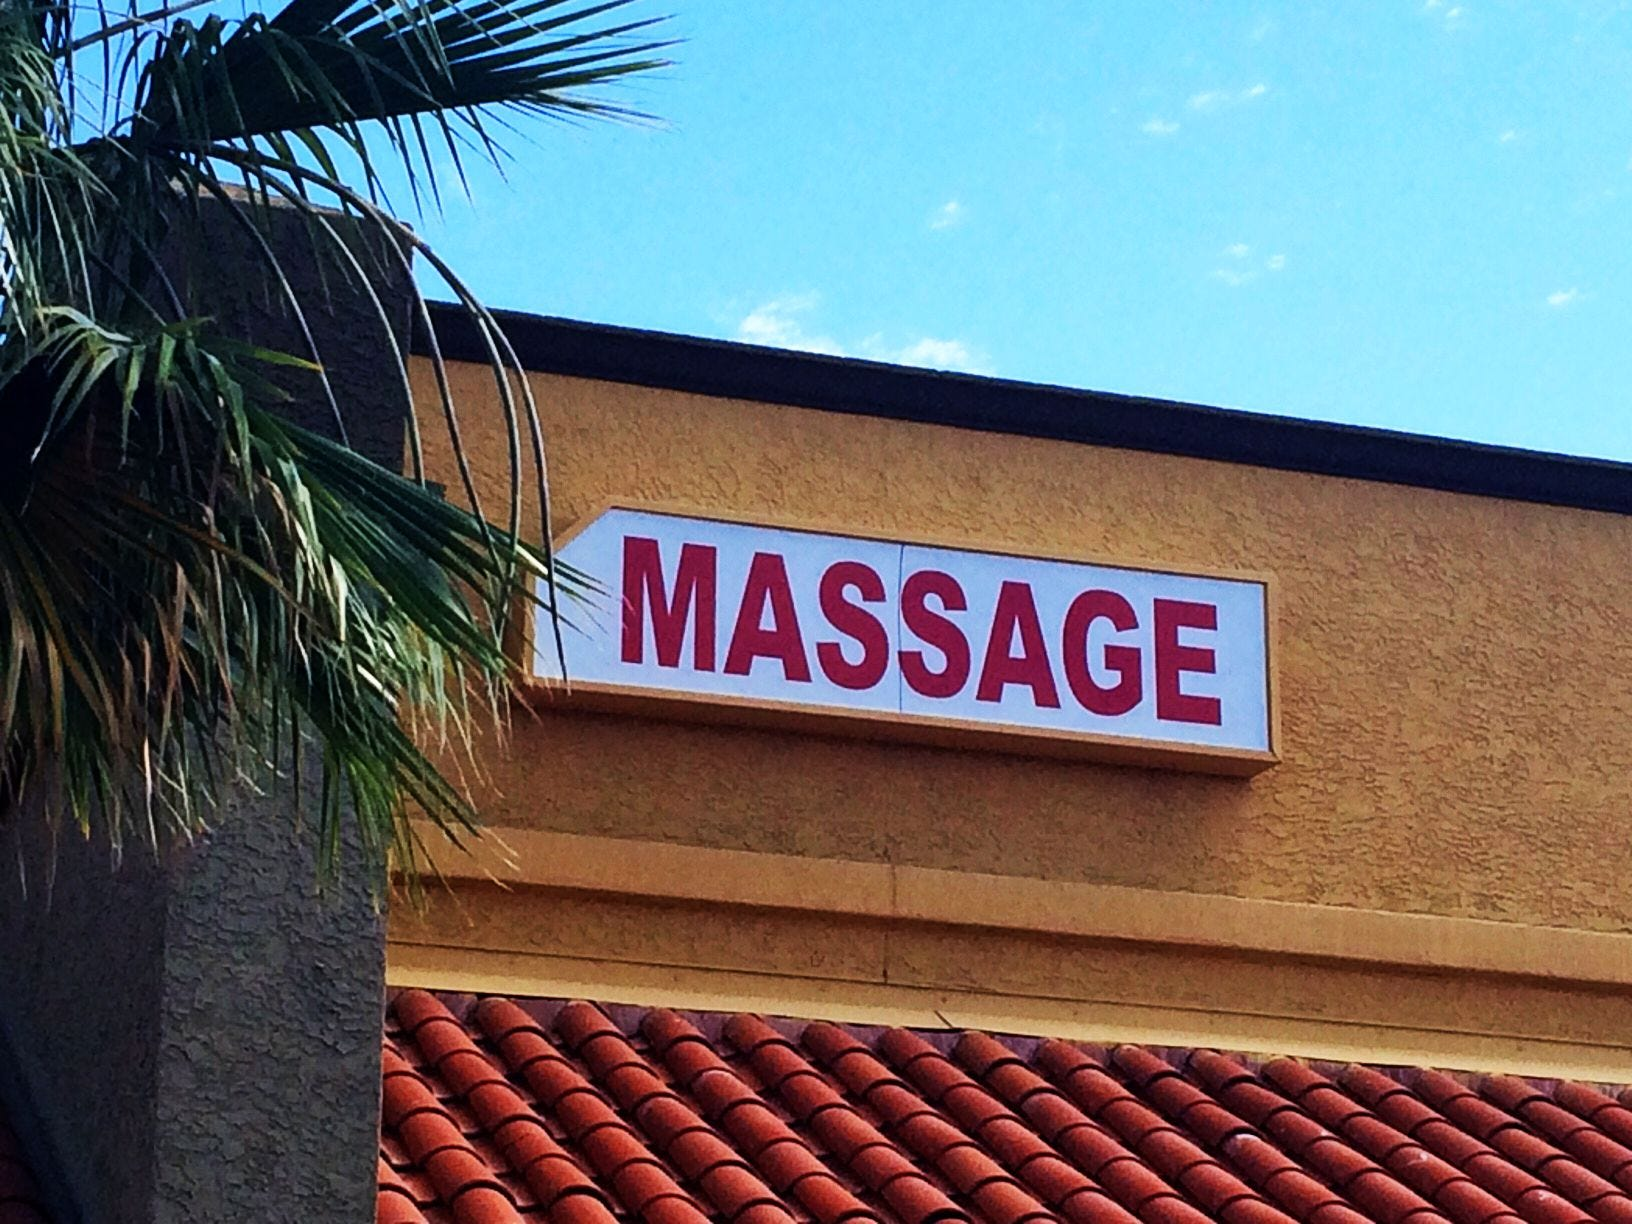 Asian massage parlor mesa arizona images 998